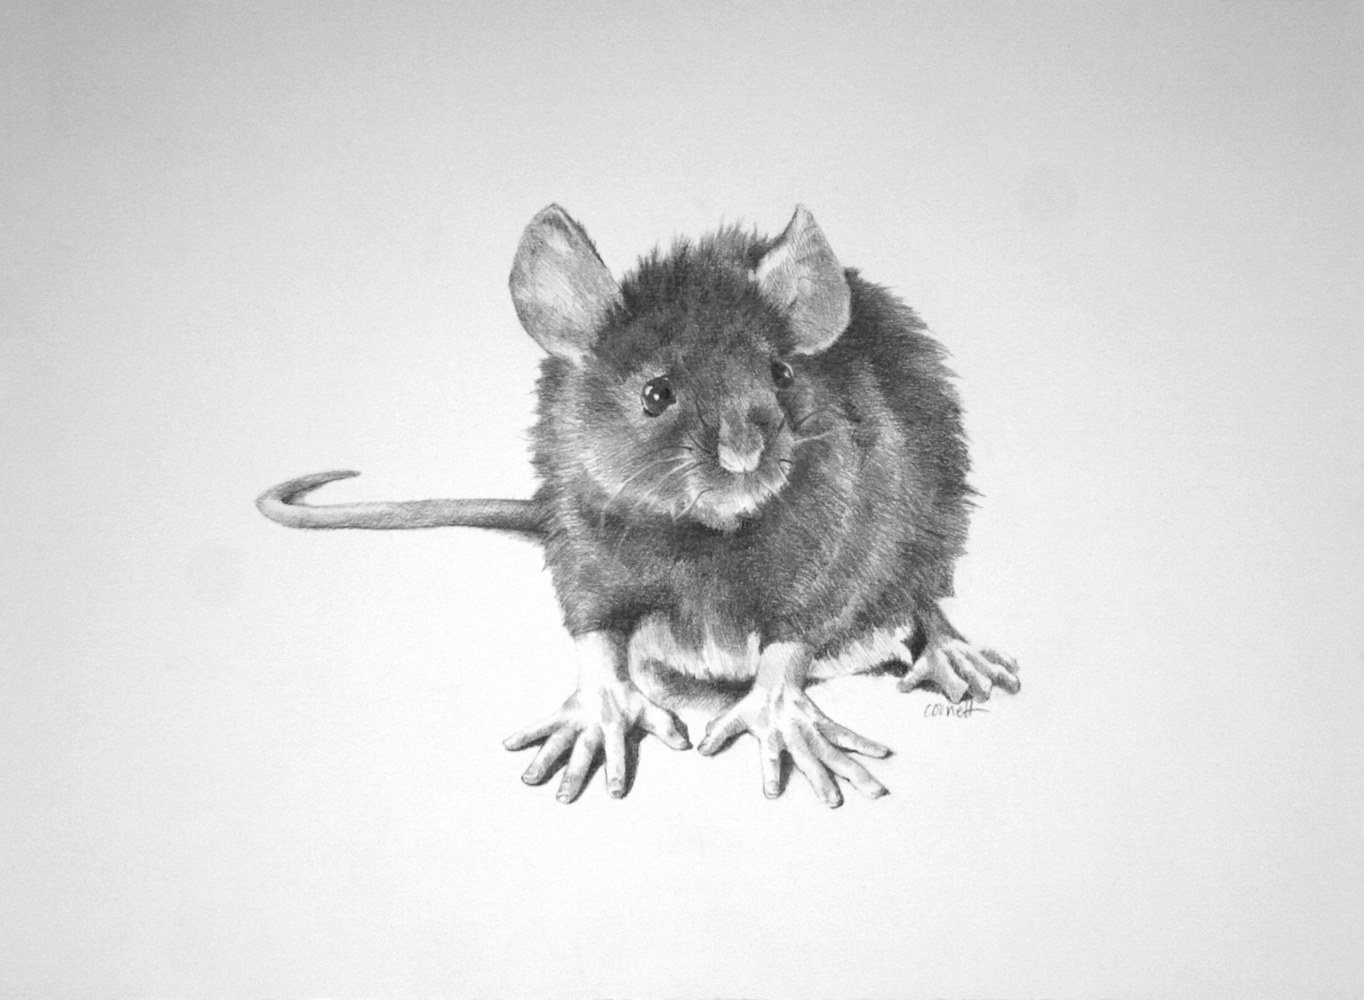 Drawing Miss Ratty by Ellen Cornett